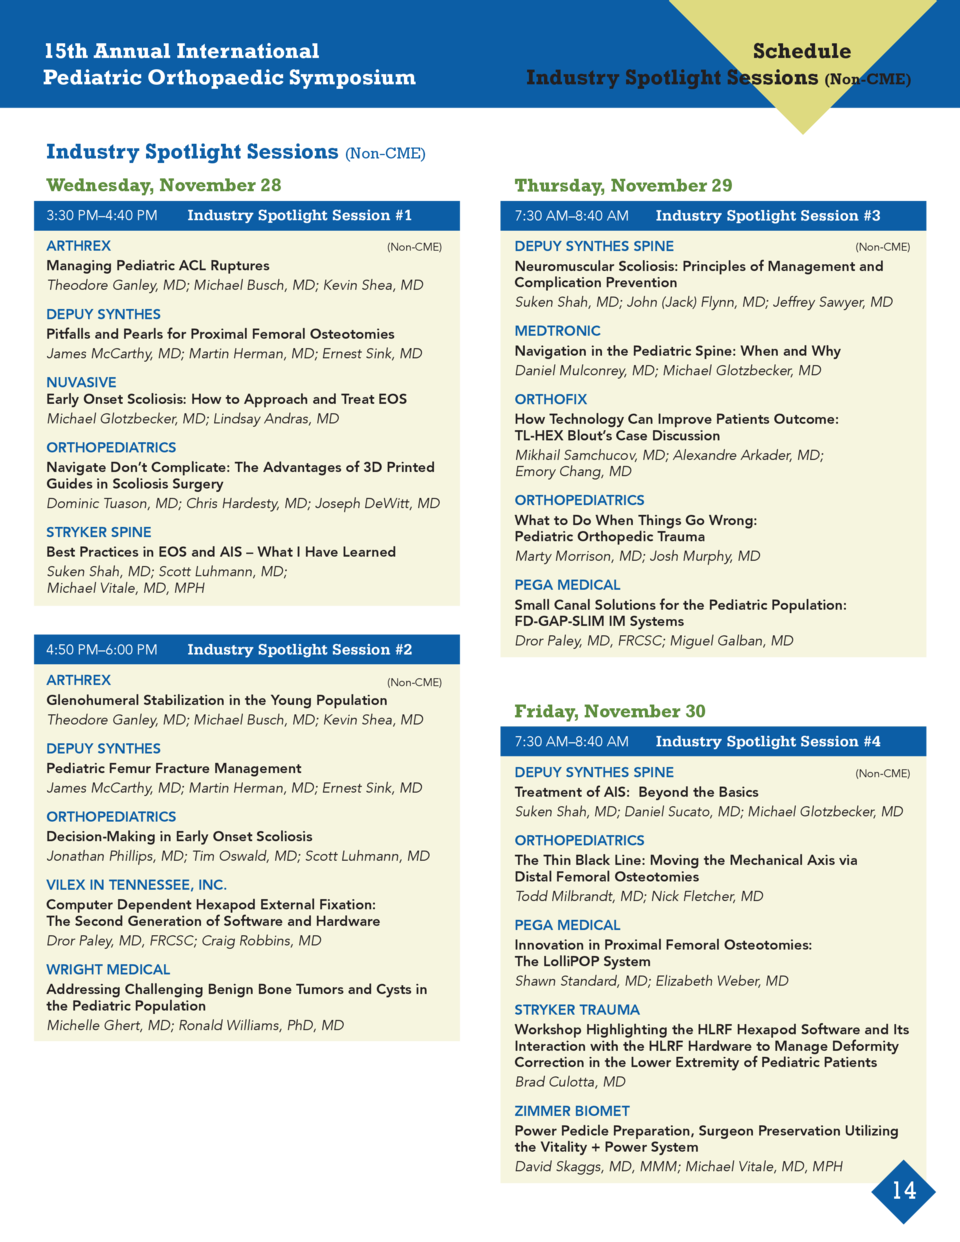 15th Annual International Pediatric Orthopaedic Symposium   Schedule Industry Spotlight Sessions  Non-CME   Industry Spotl...